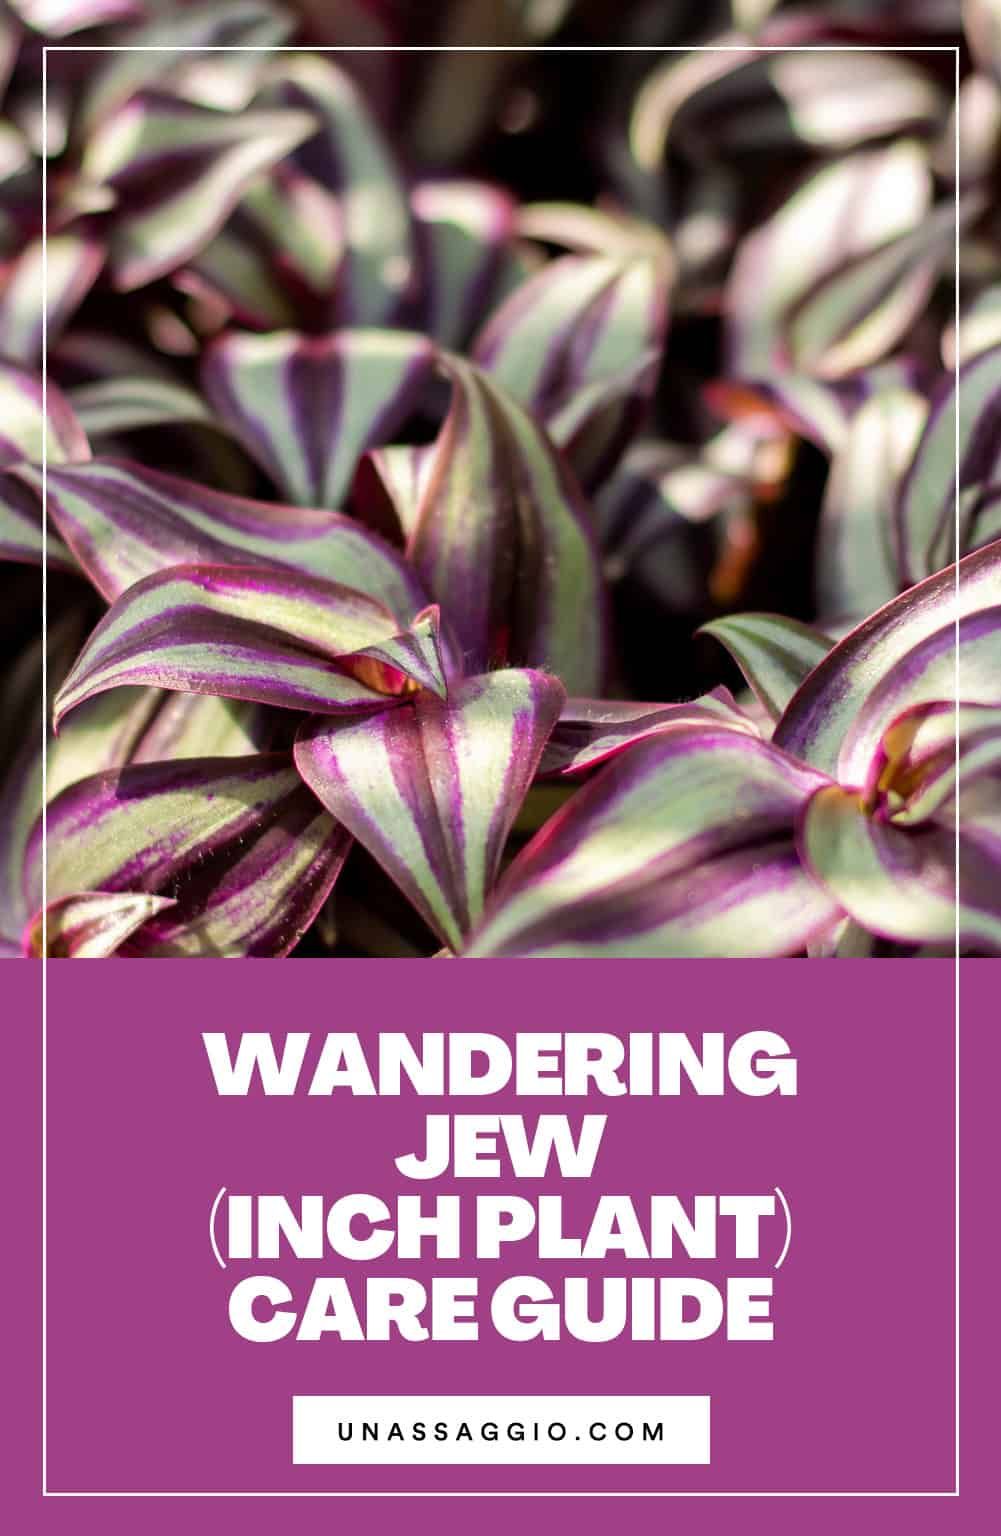 Wandering Jew (Inch Plant) Care Guide